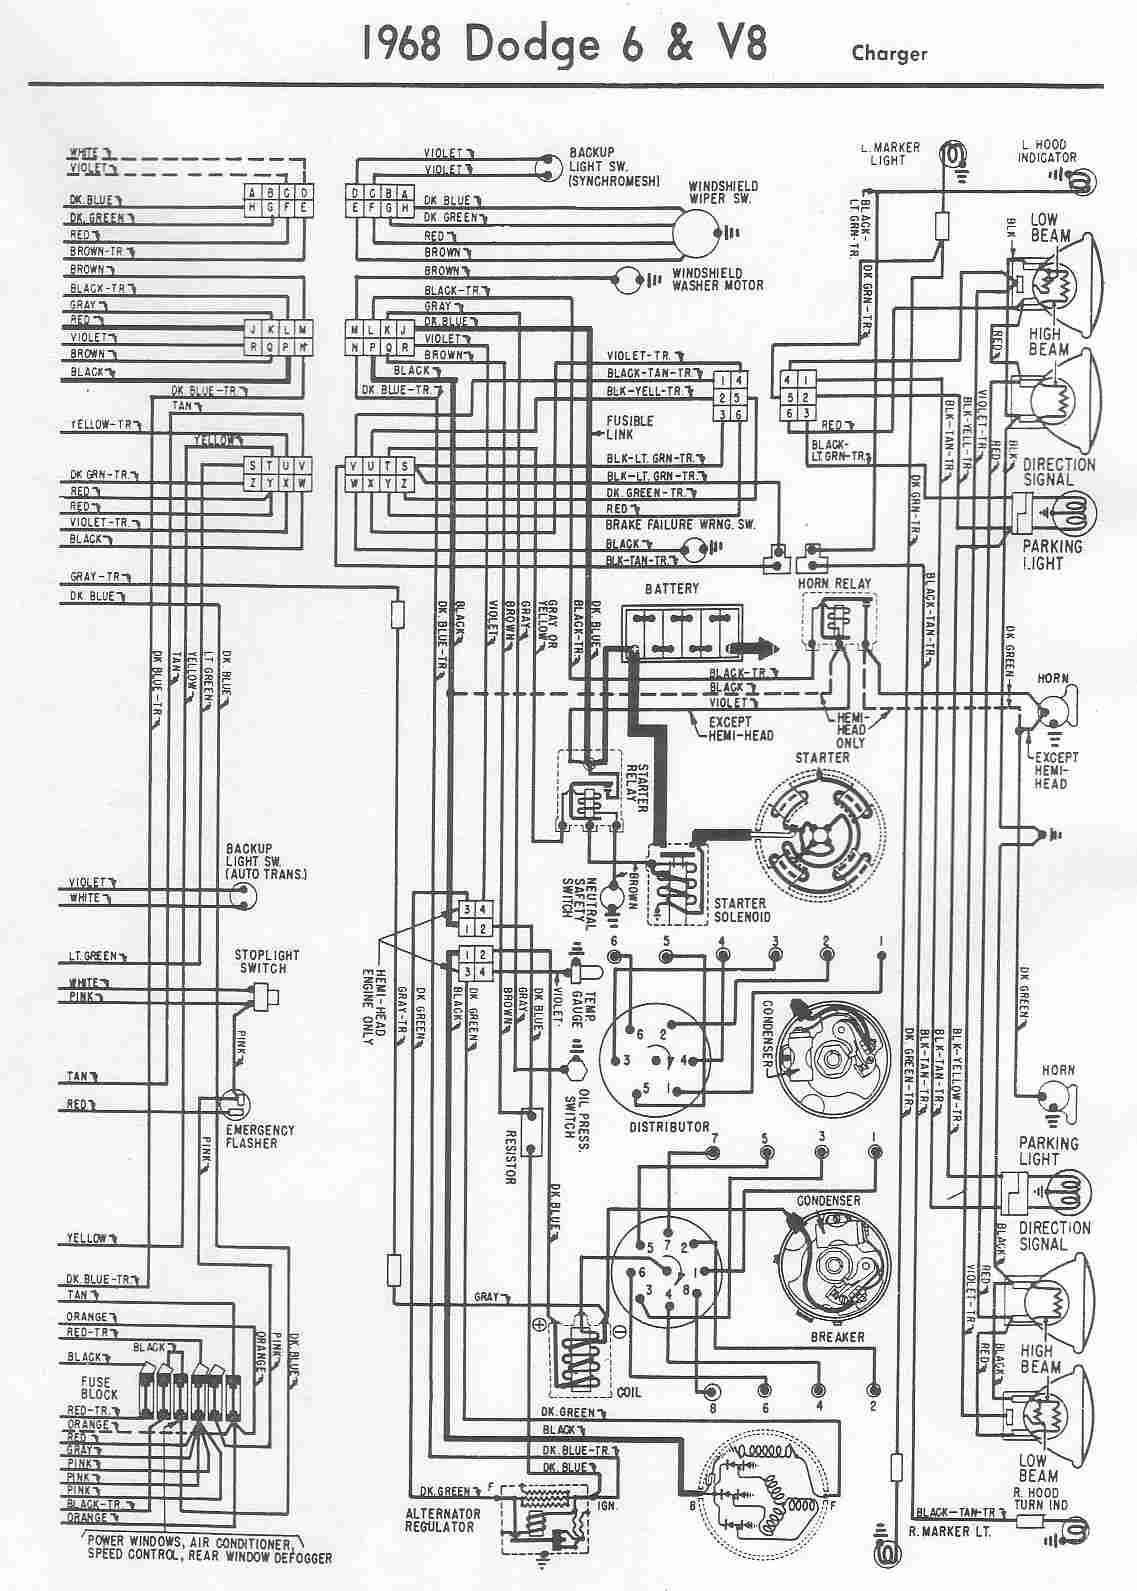 charger electrical wiring diagram of 1968 dodge 6 and v8?t=1508404771 dodge car manuals, wiring diagrams pdf & fault codes Multi Speed Blower Motor Wiring at gsmportal.co